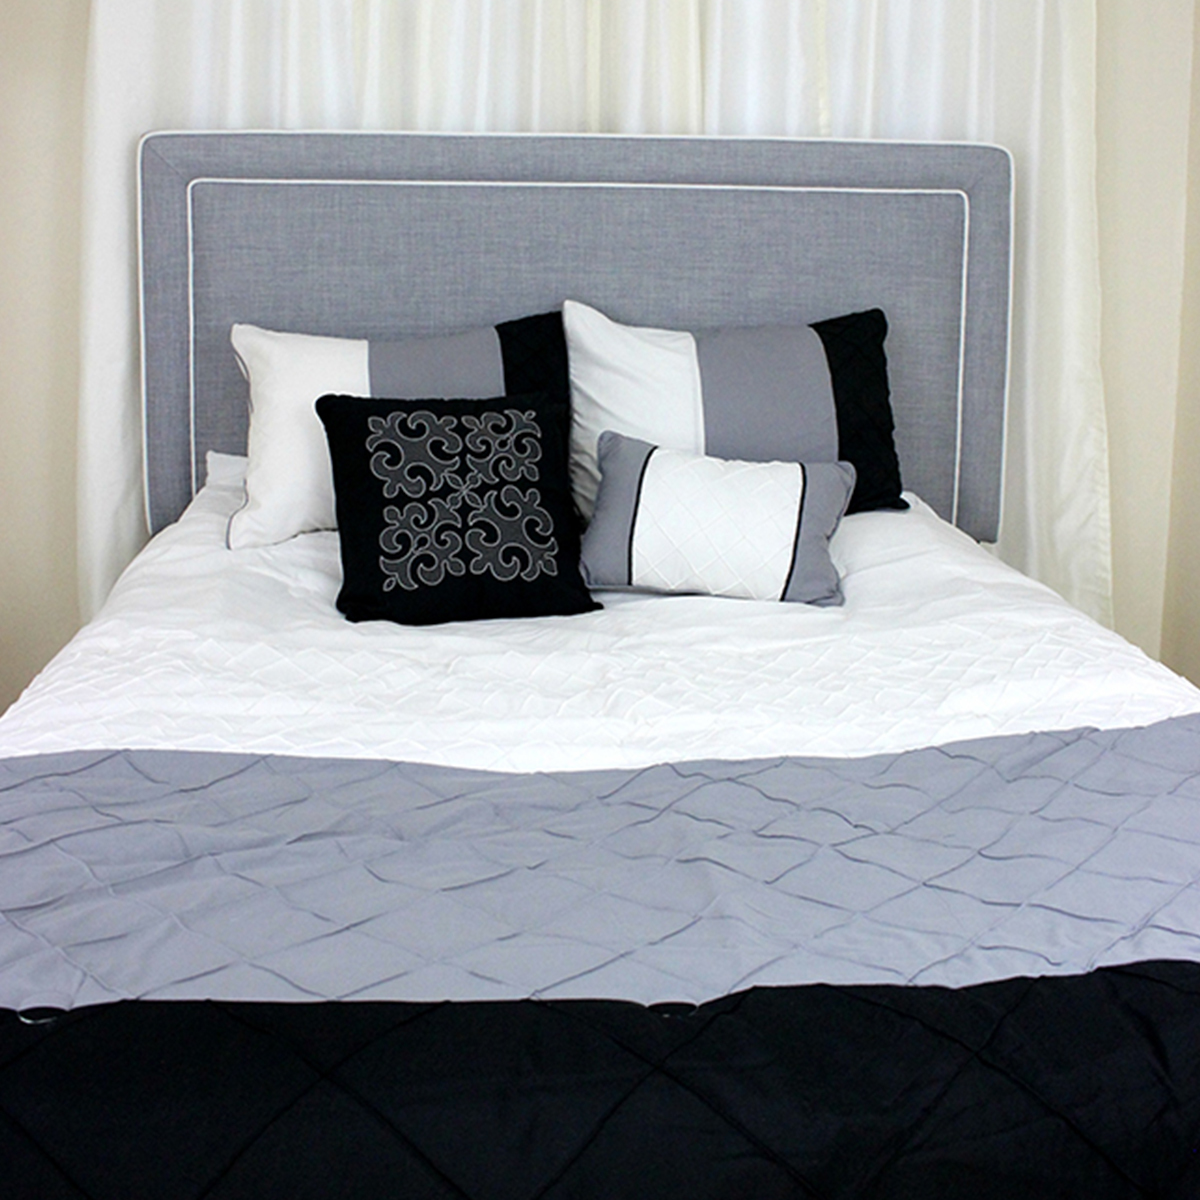 Headboard with border and contrasting stitching paired with an onyx 5-piece bedding comforter set fit for your guest room. photo